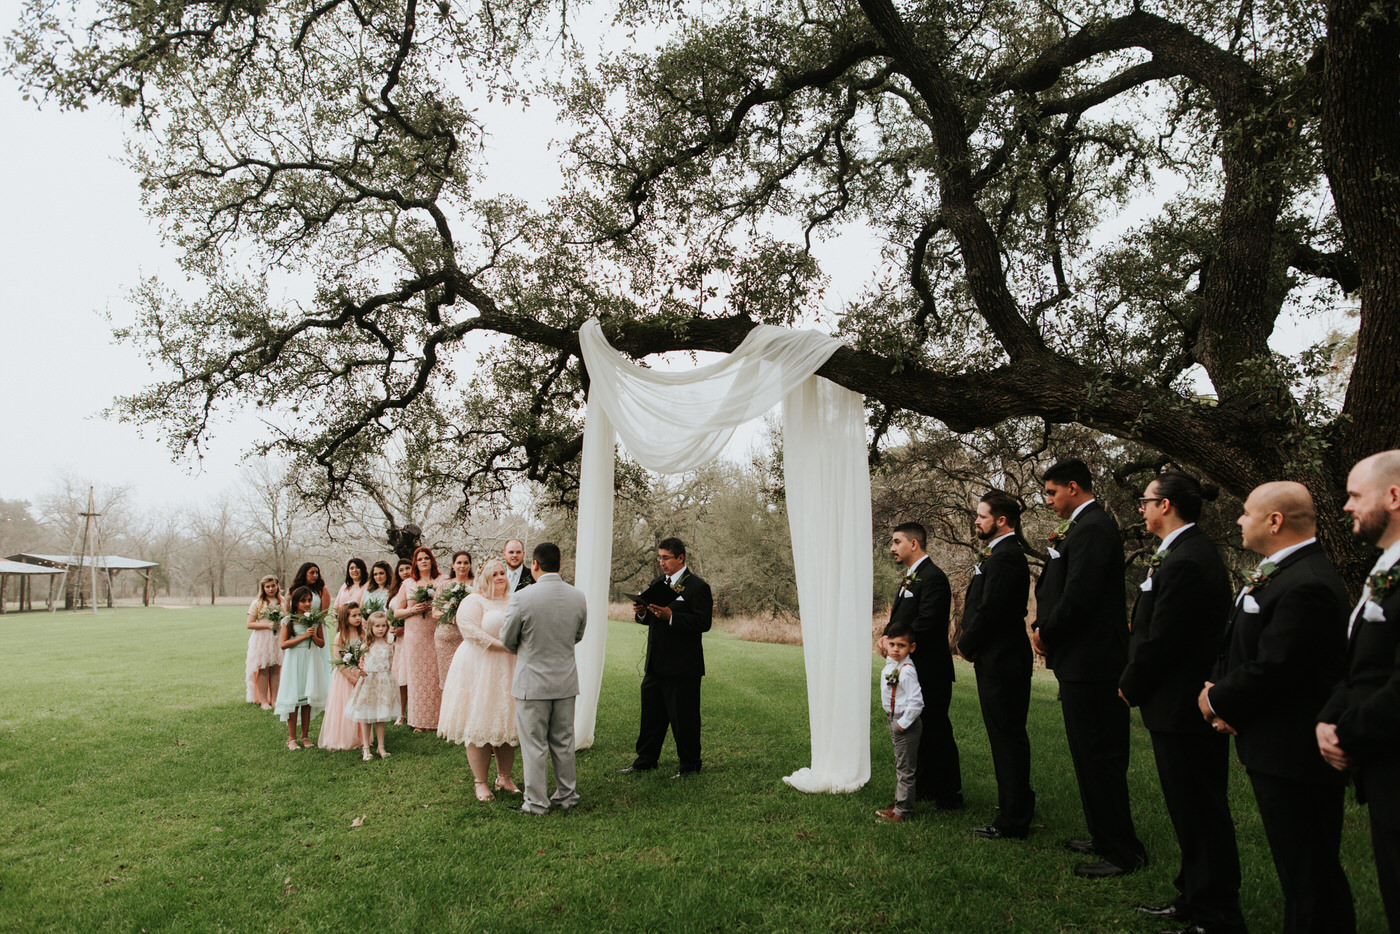 Couple getting married at Pecan Springs Ranch